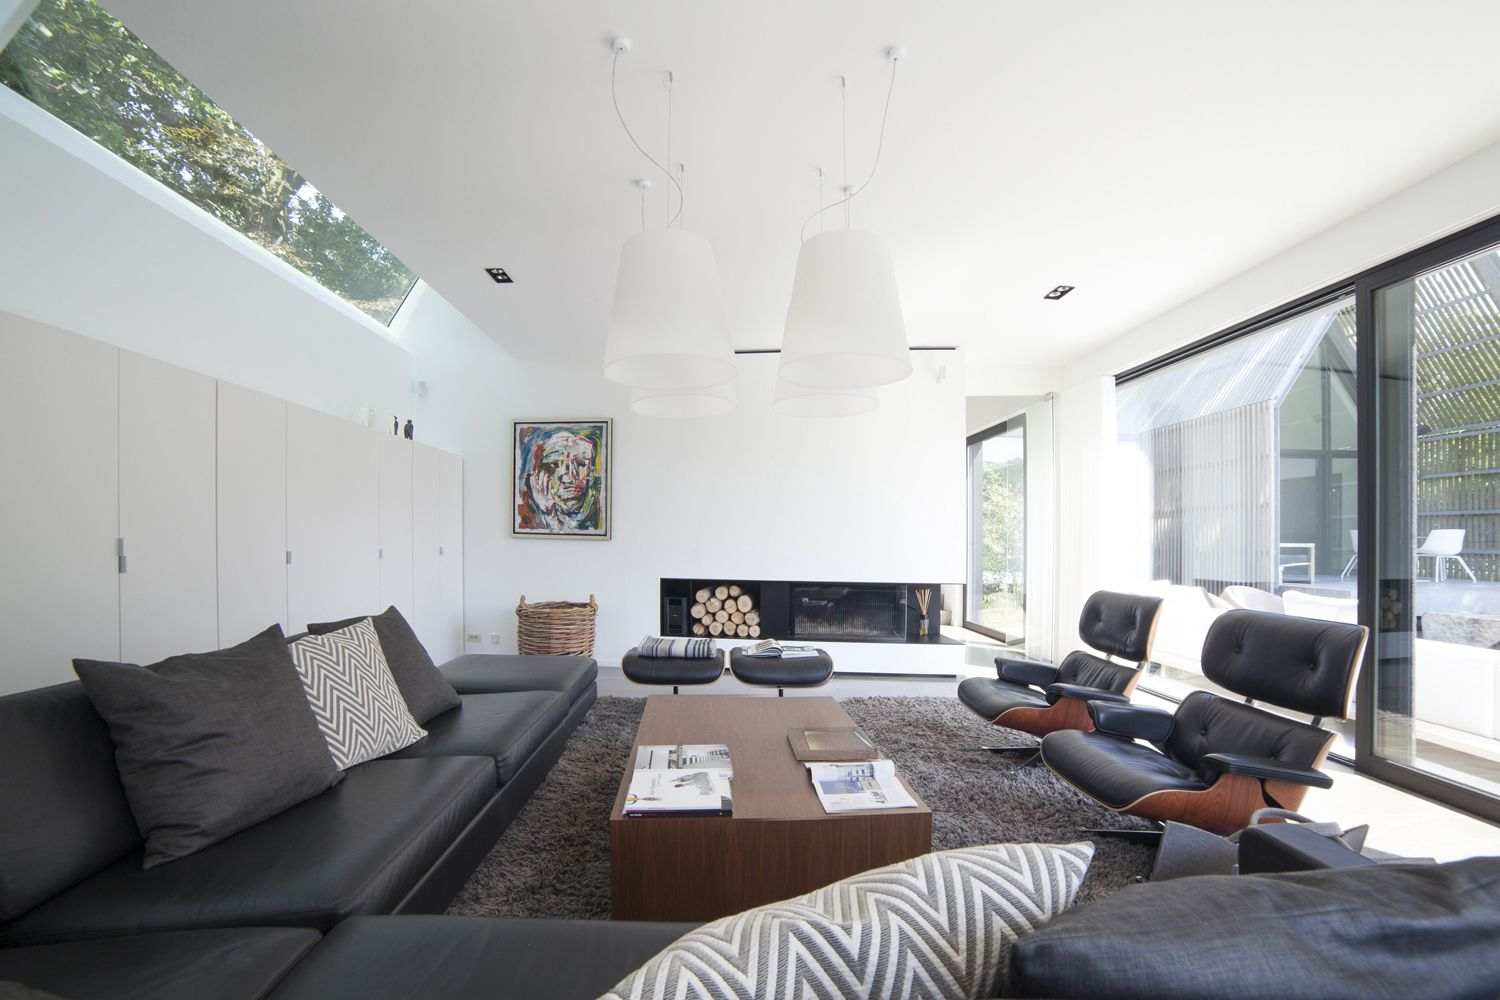 Pin by Measuredworks Architecture on Living | Interior ...